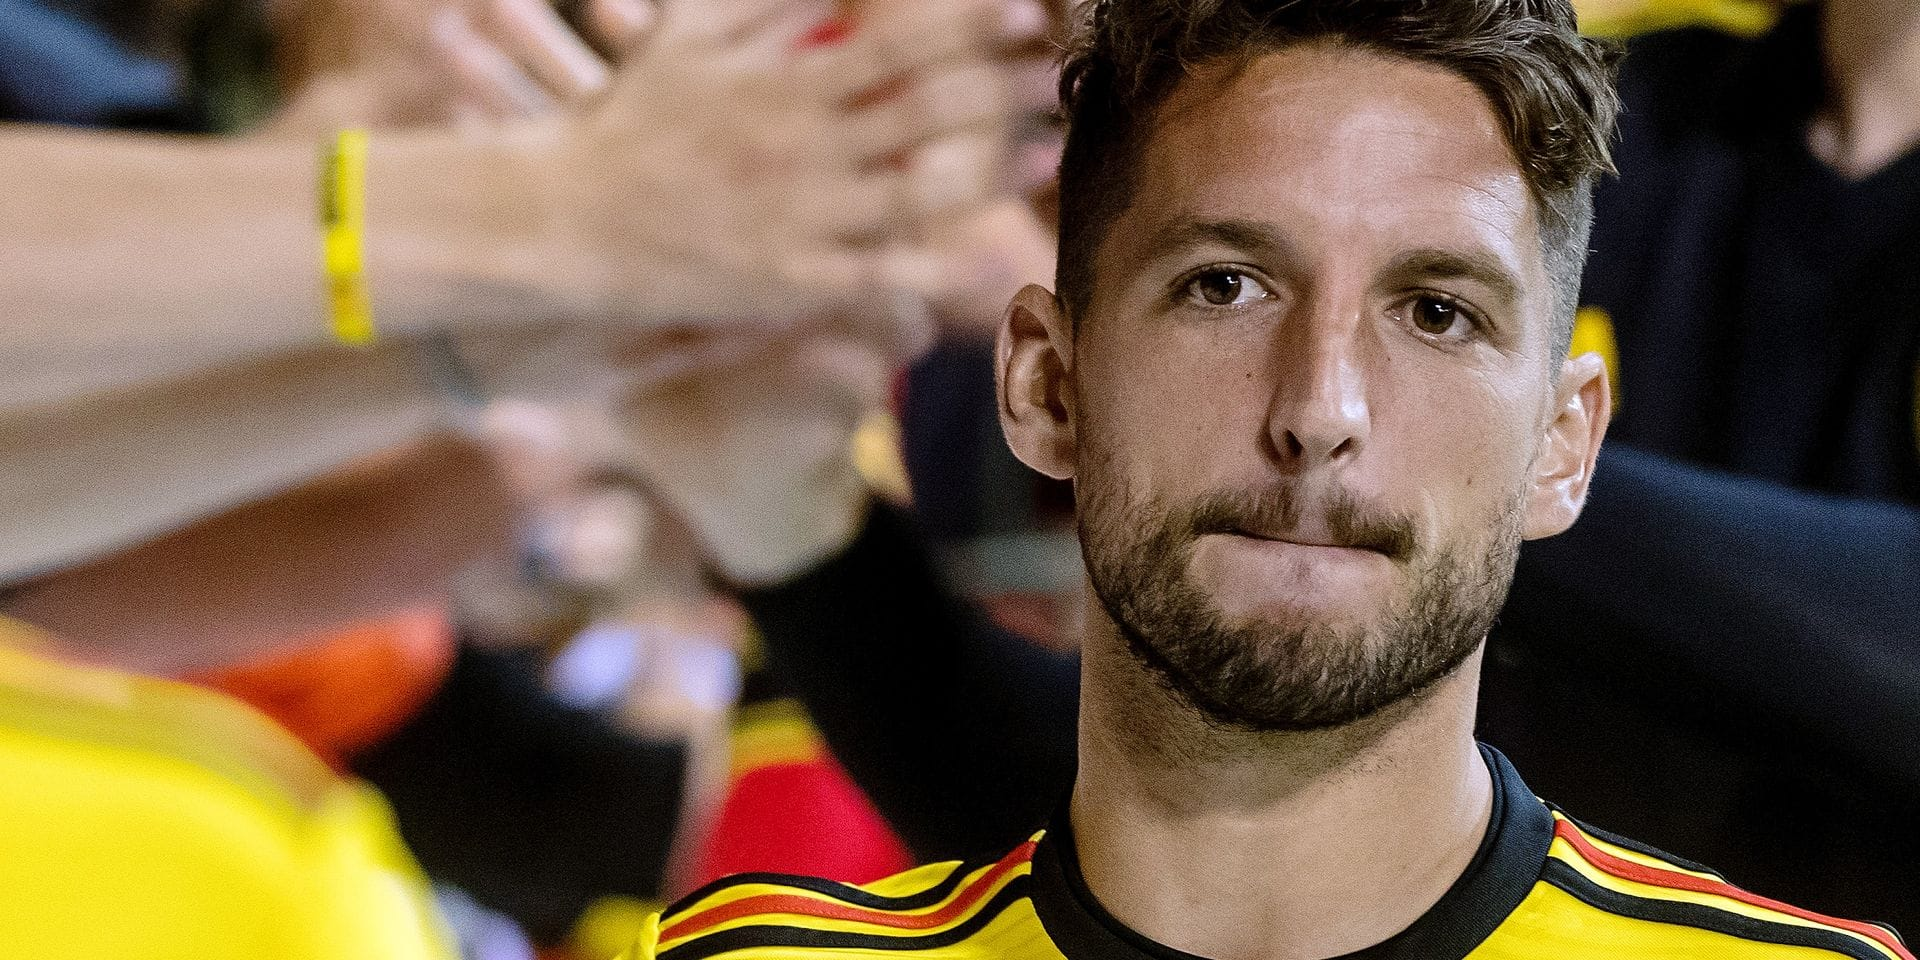 Belgium, Brussels, Jun 11, 2018 - Friendly game between Belgian national team Red Devils and Costa Rica, as part of preparations for the 2018 FIFA World Cup in Russia - Dries Mertens Copyright Danny Gys / Reporters Reporters / GYS